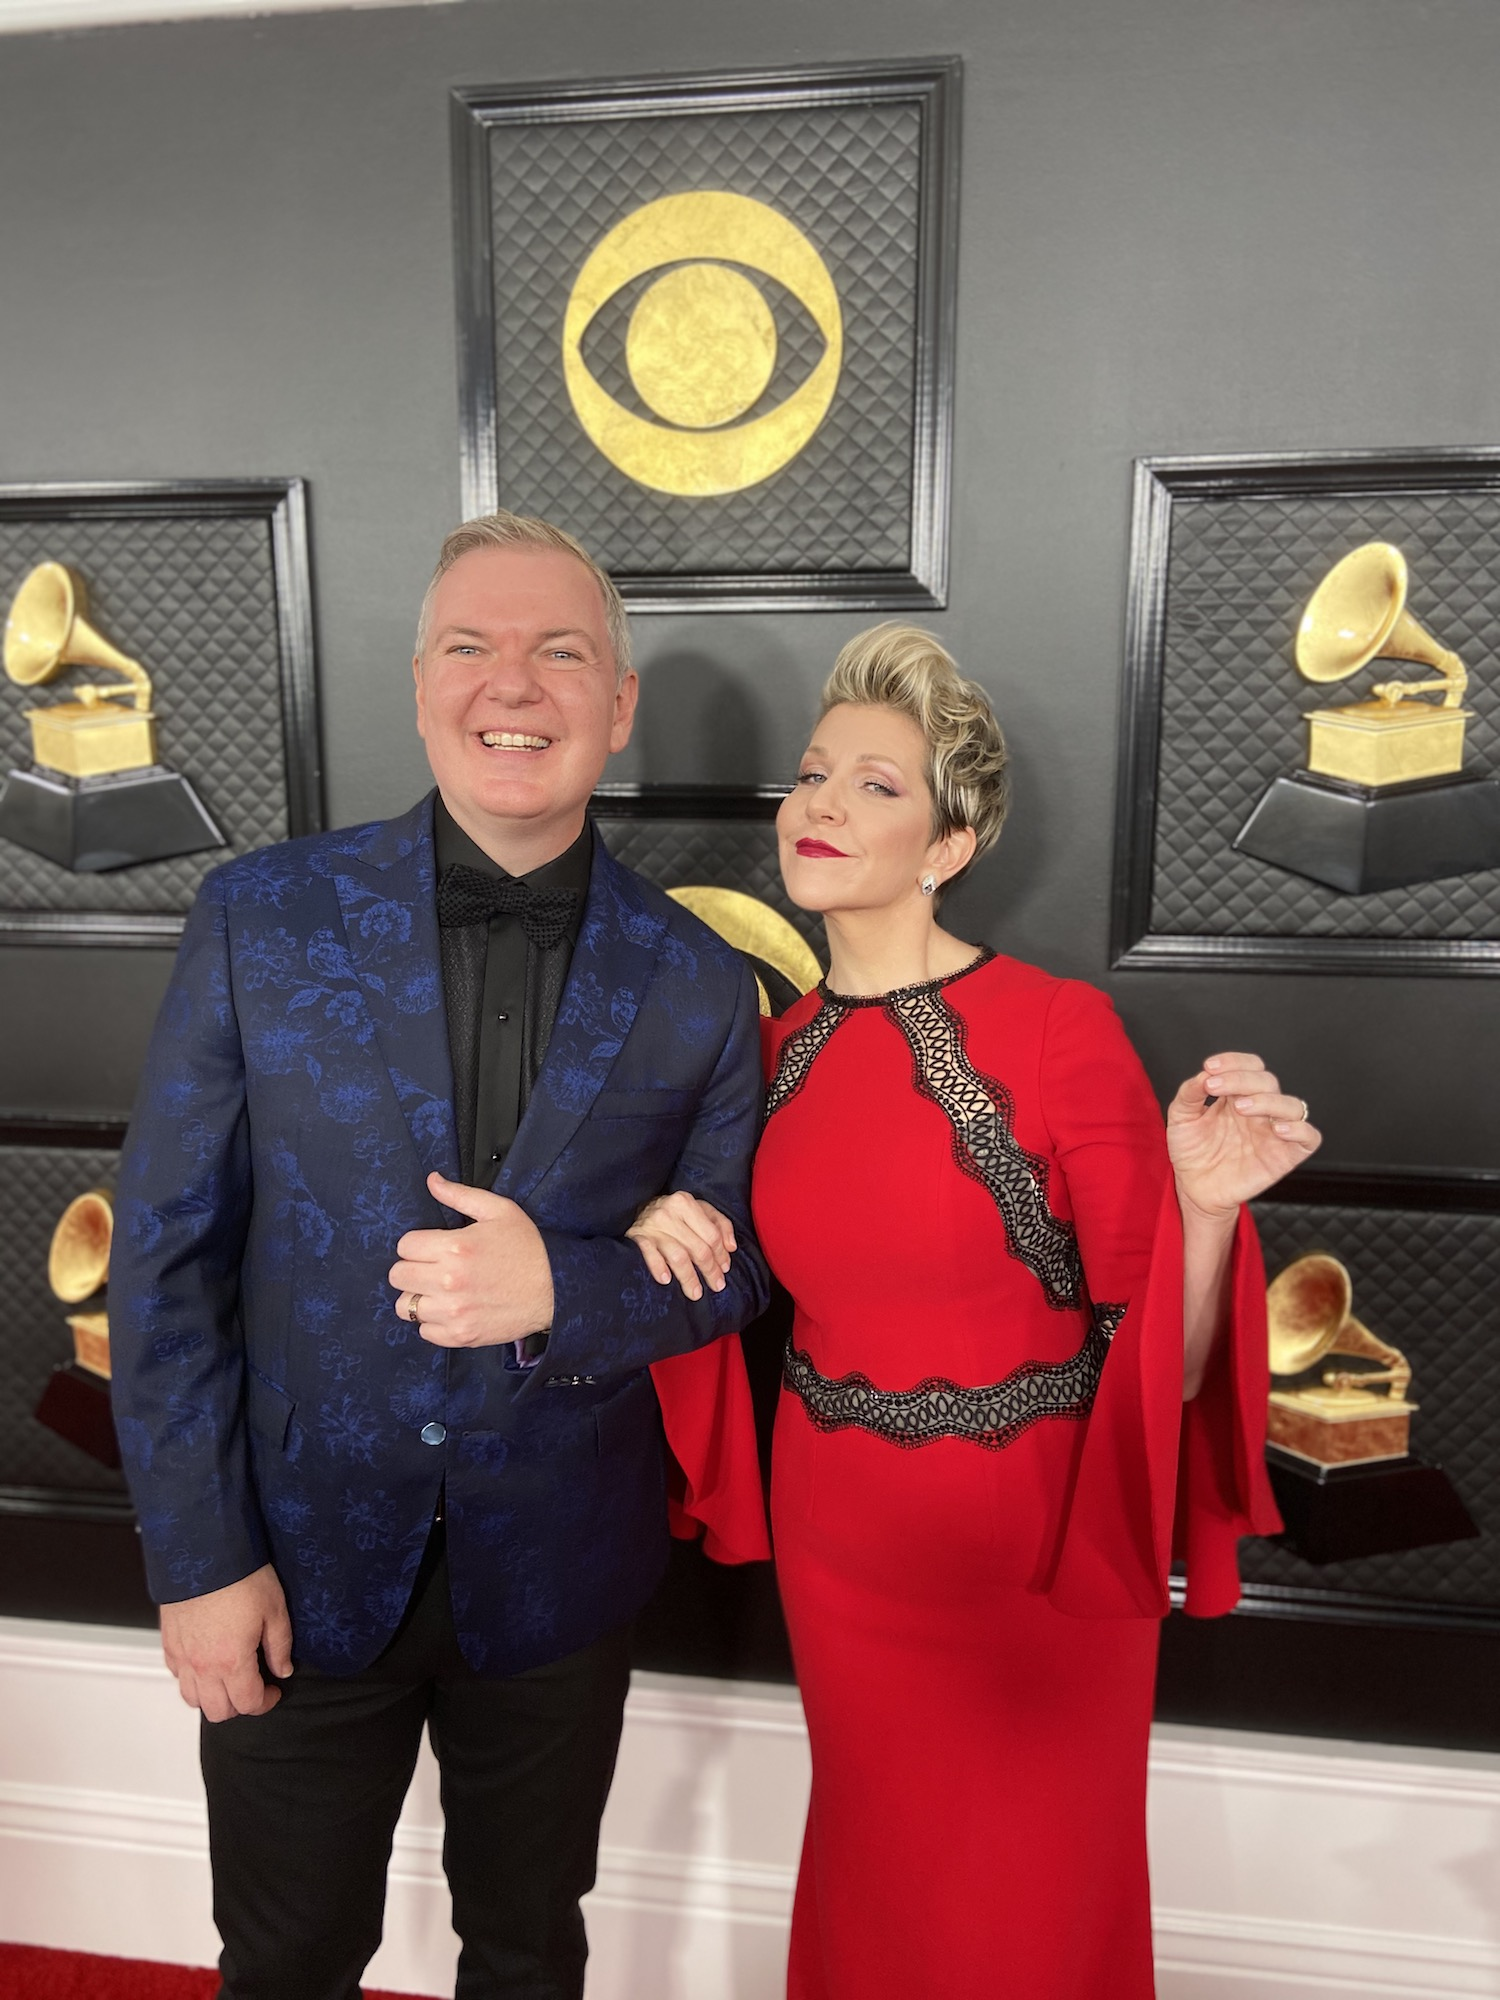 Craig Terry, left, and opera singer Joyce DiDonato smile for the cameras prior to the Grammy Awards Jan. 26 in Los Angeles.